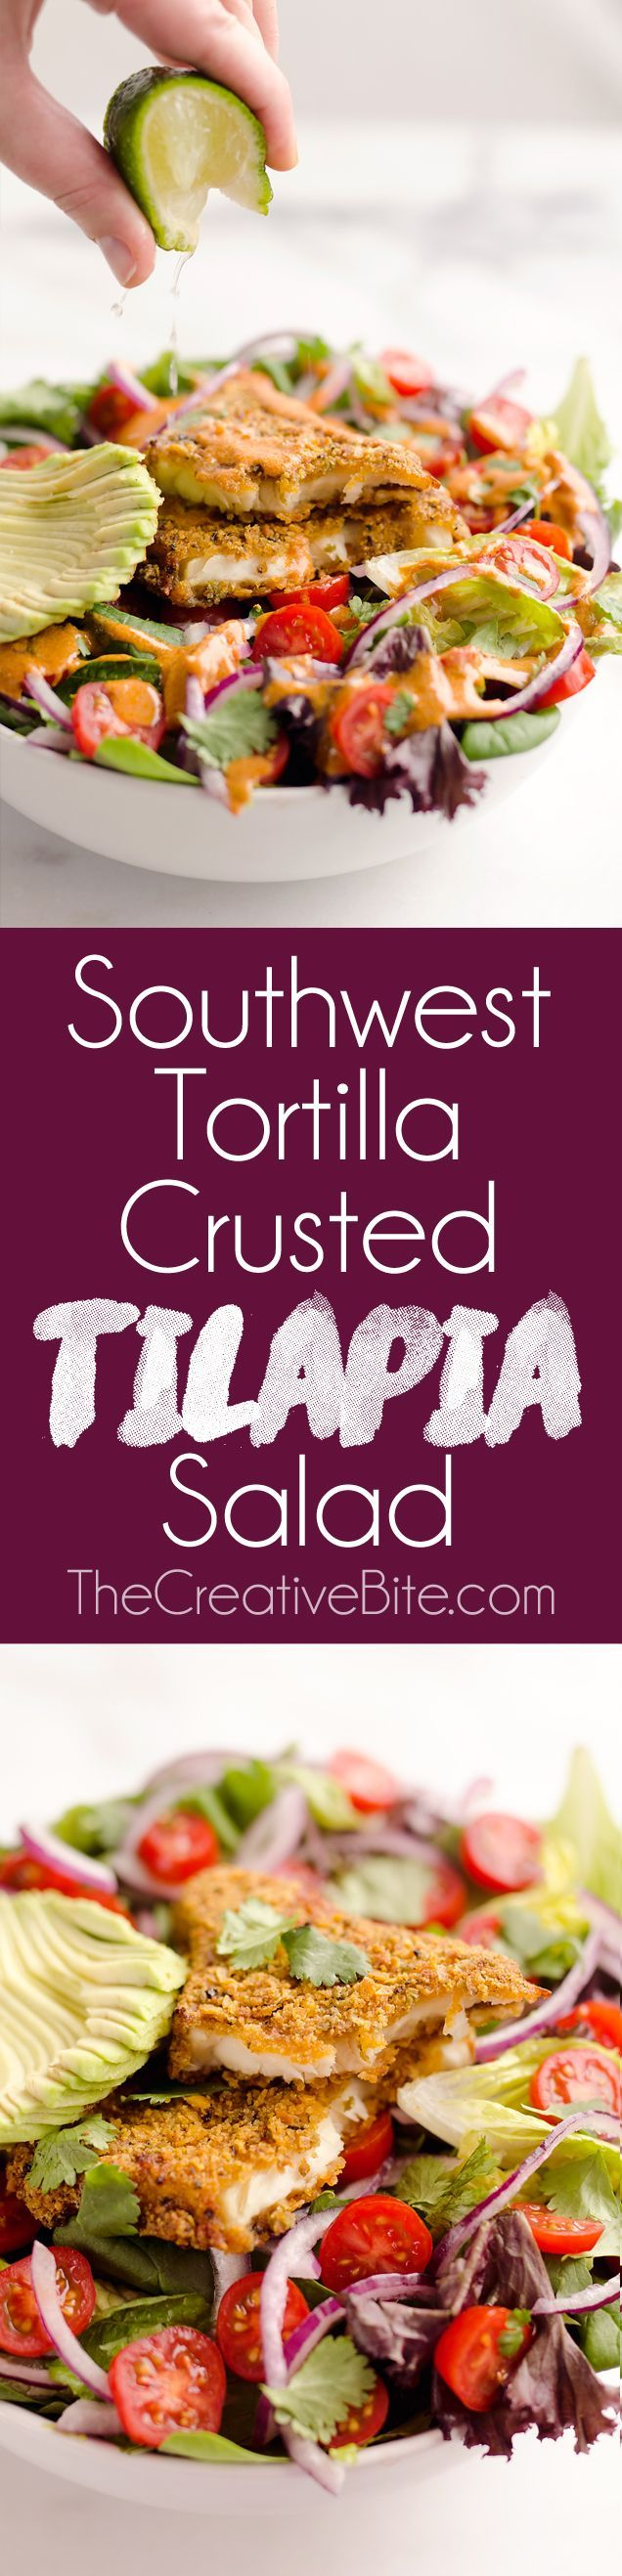 Southwest Tortilla Crusted Tilapia Salad is an easy and healthy 15 minute recipe made with an airfryer!